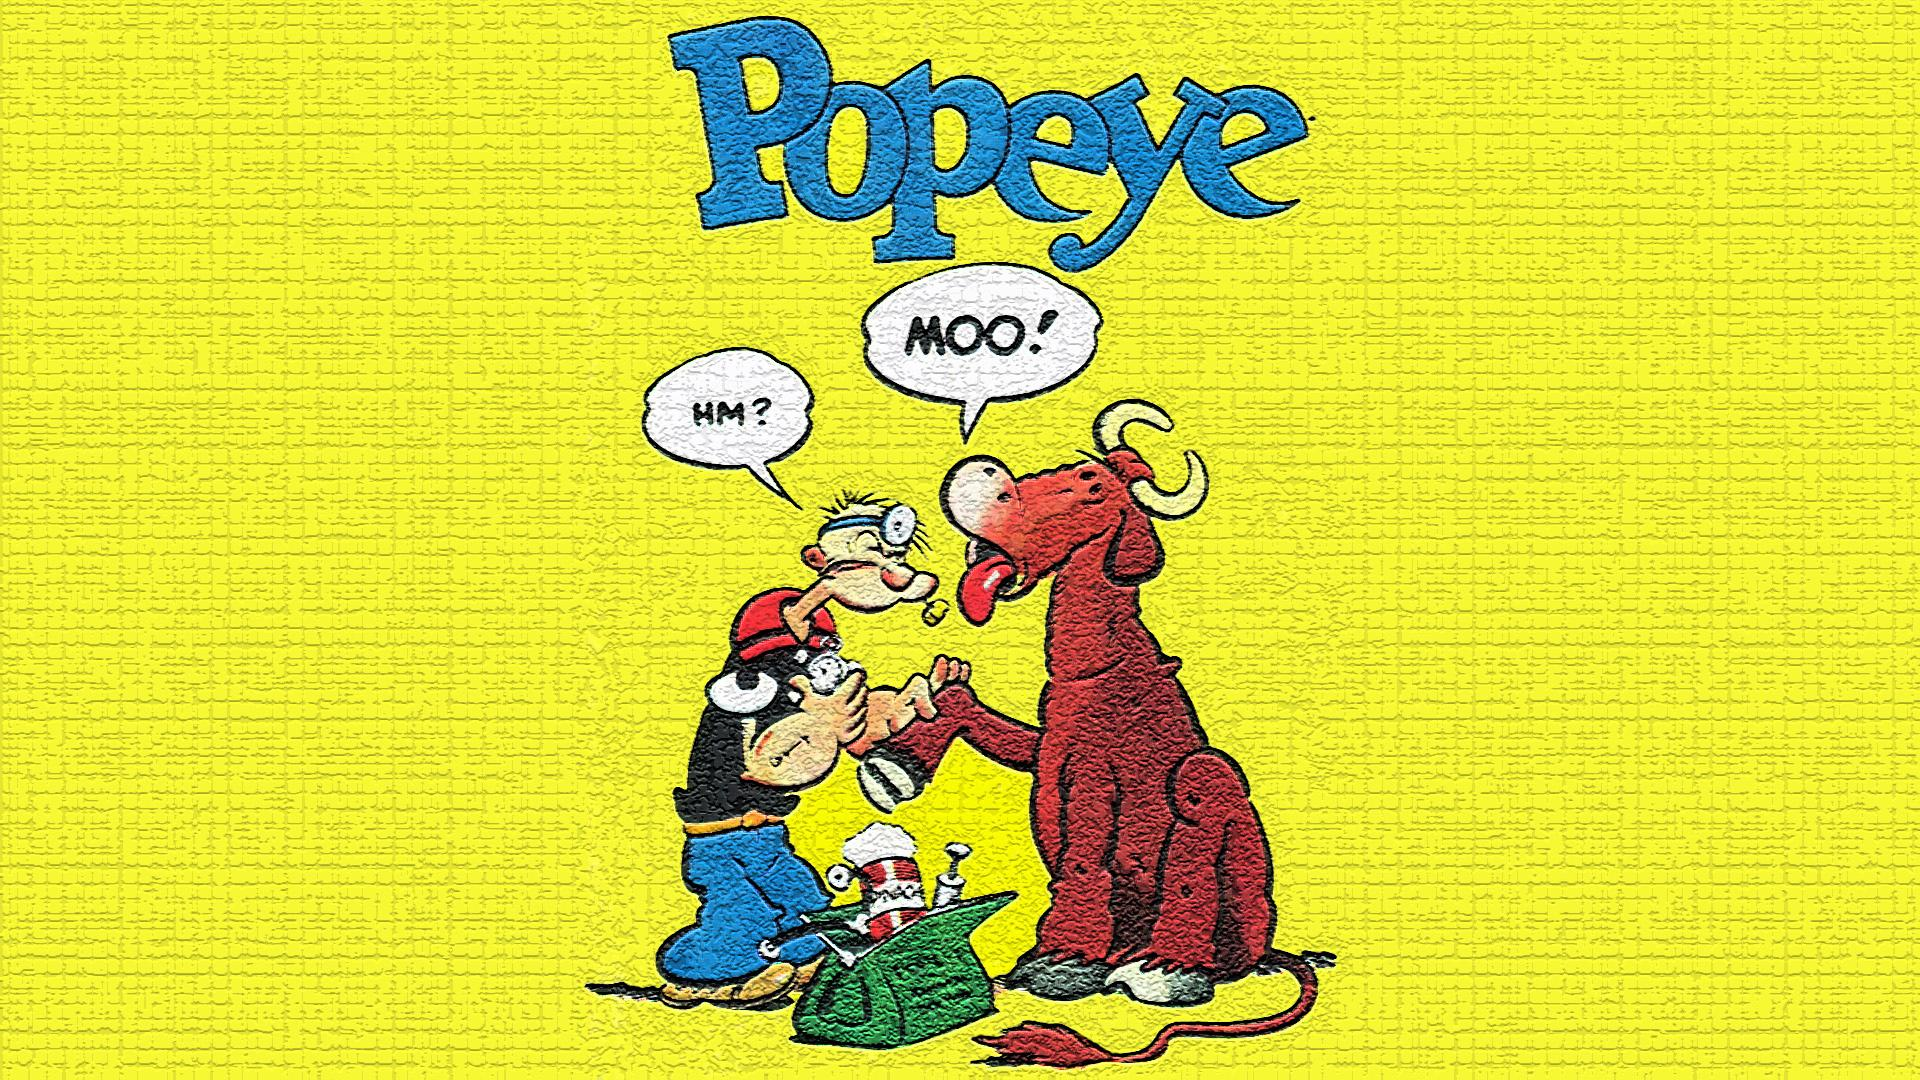 Popeye Comics wallpapers HD quality